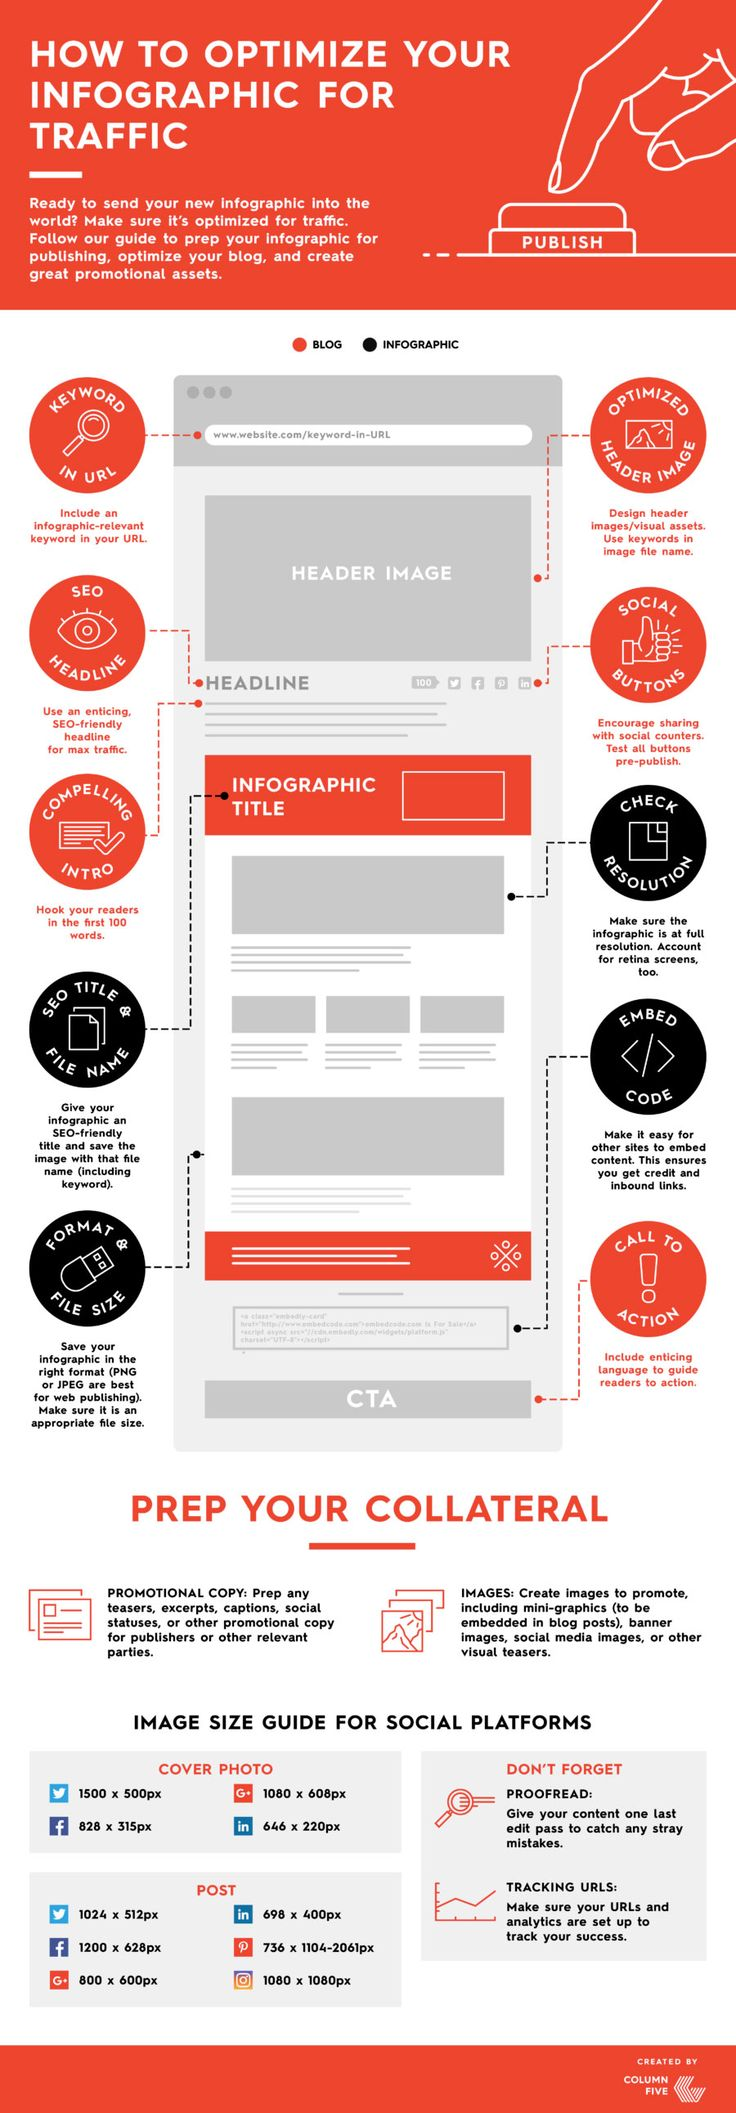 Do you create Infographics? Optimize Your Infographic for Traffic - #Infographics - Website Magazine